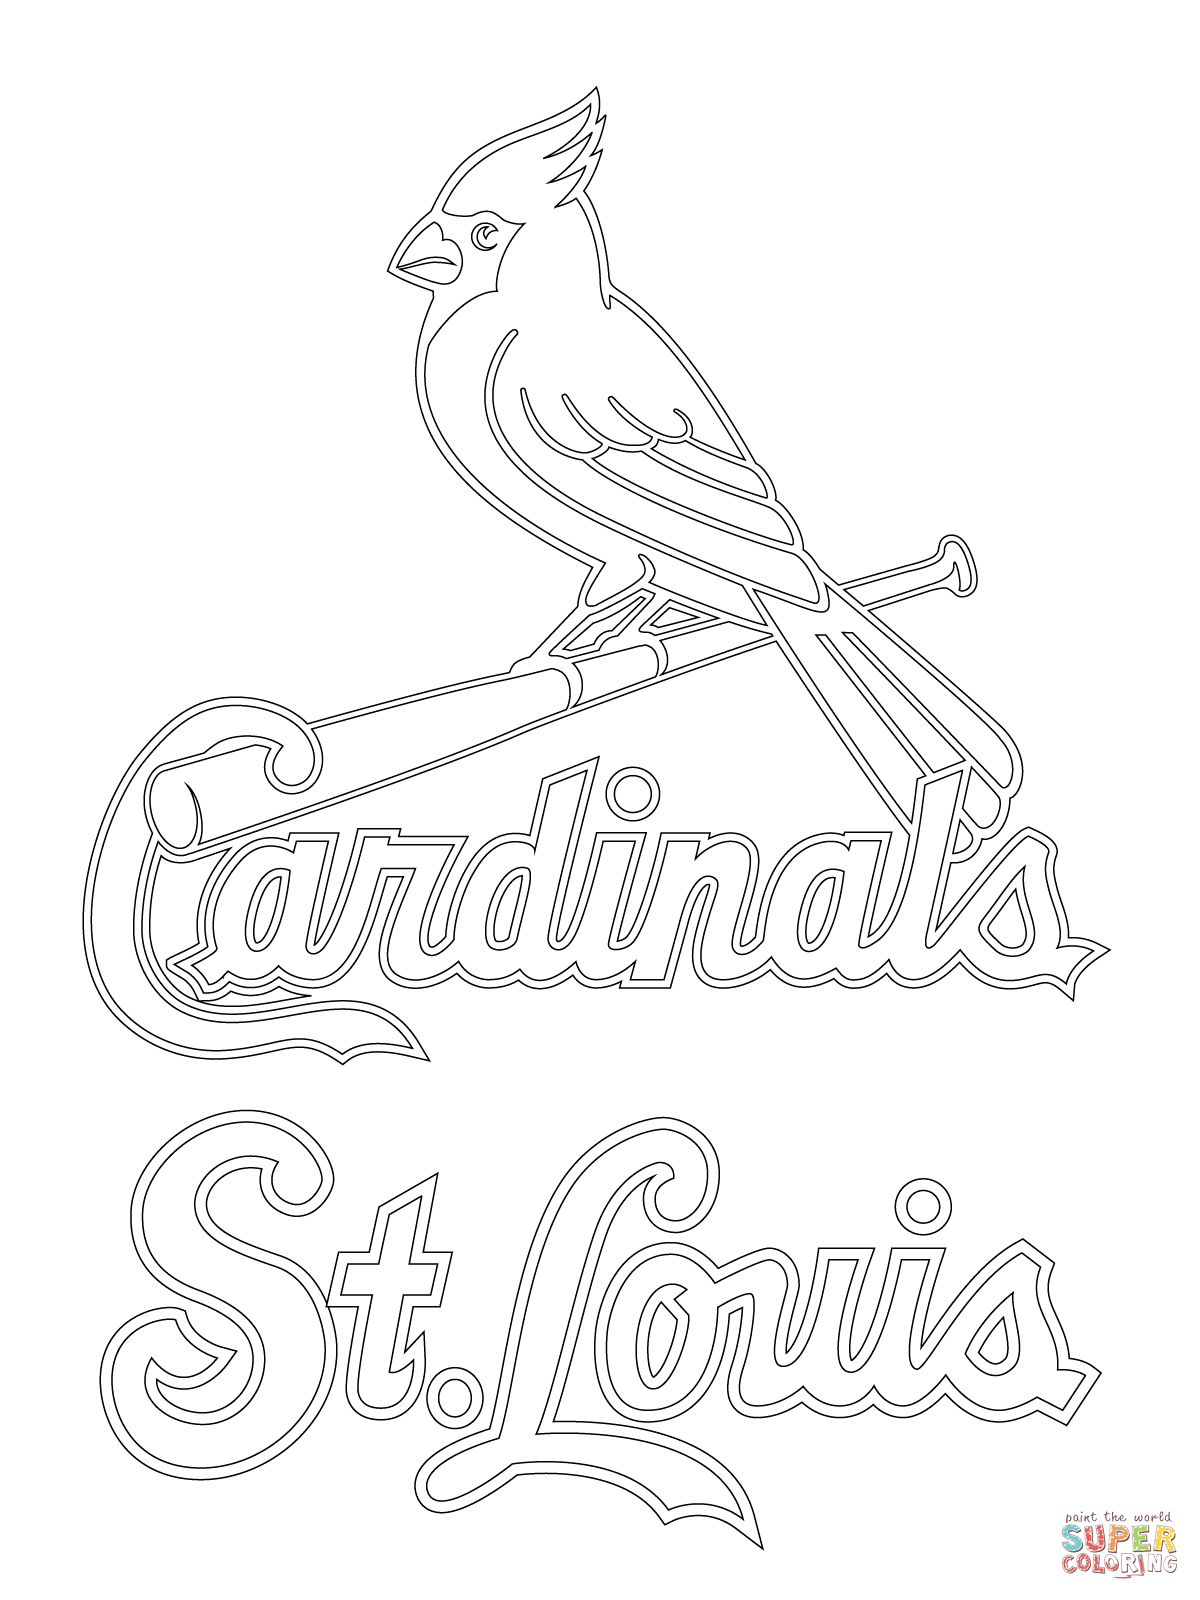 1200x1600 Best Of St Louis Cardinals Logo Coloring Page Supercoloring